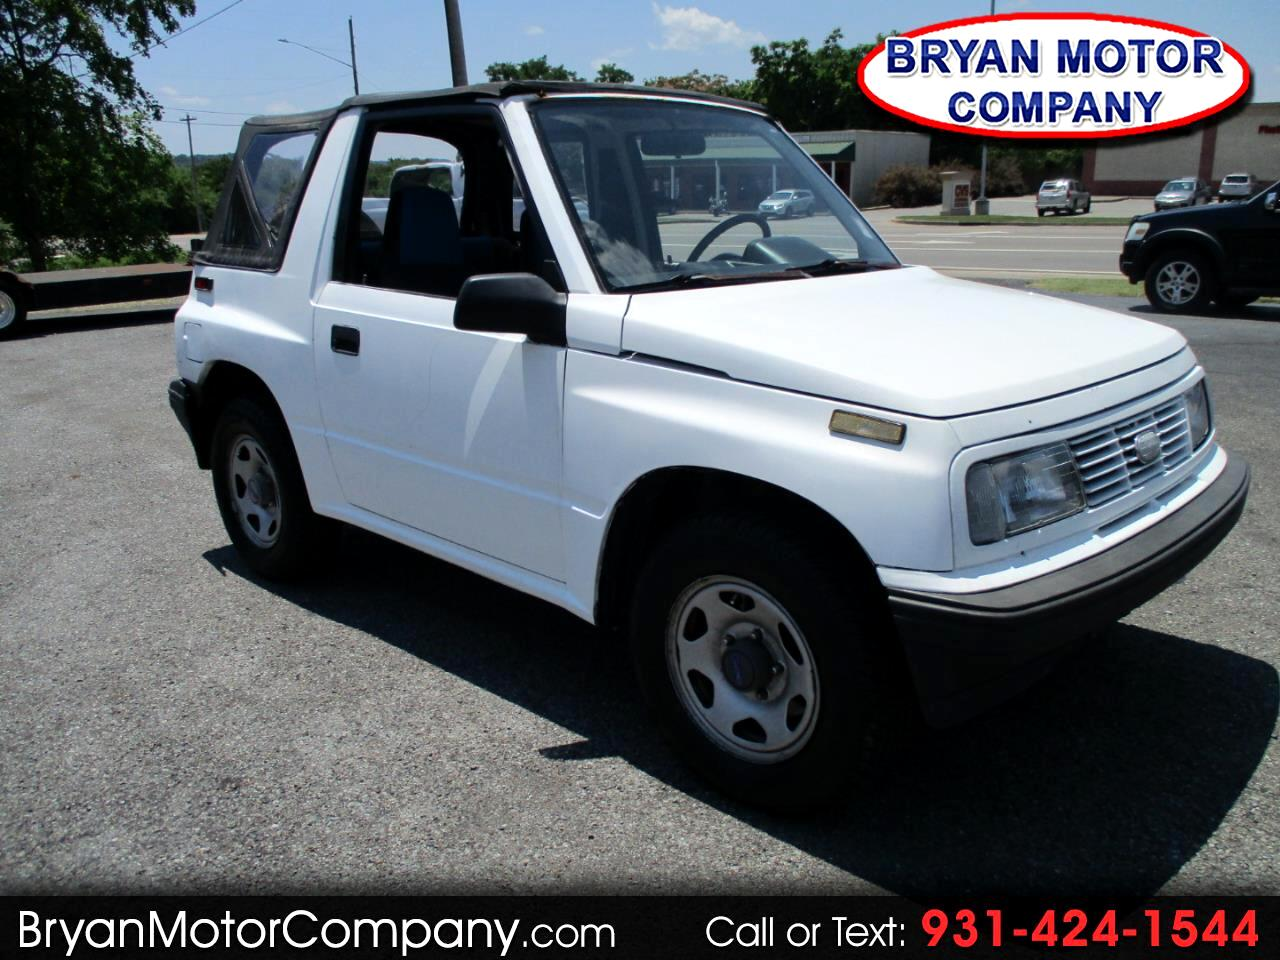 1992 Geo Tracker 2dr Convertible 2WD